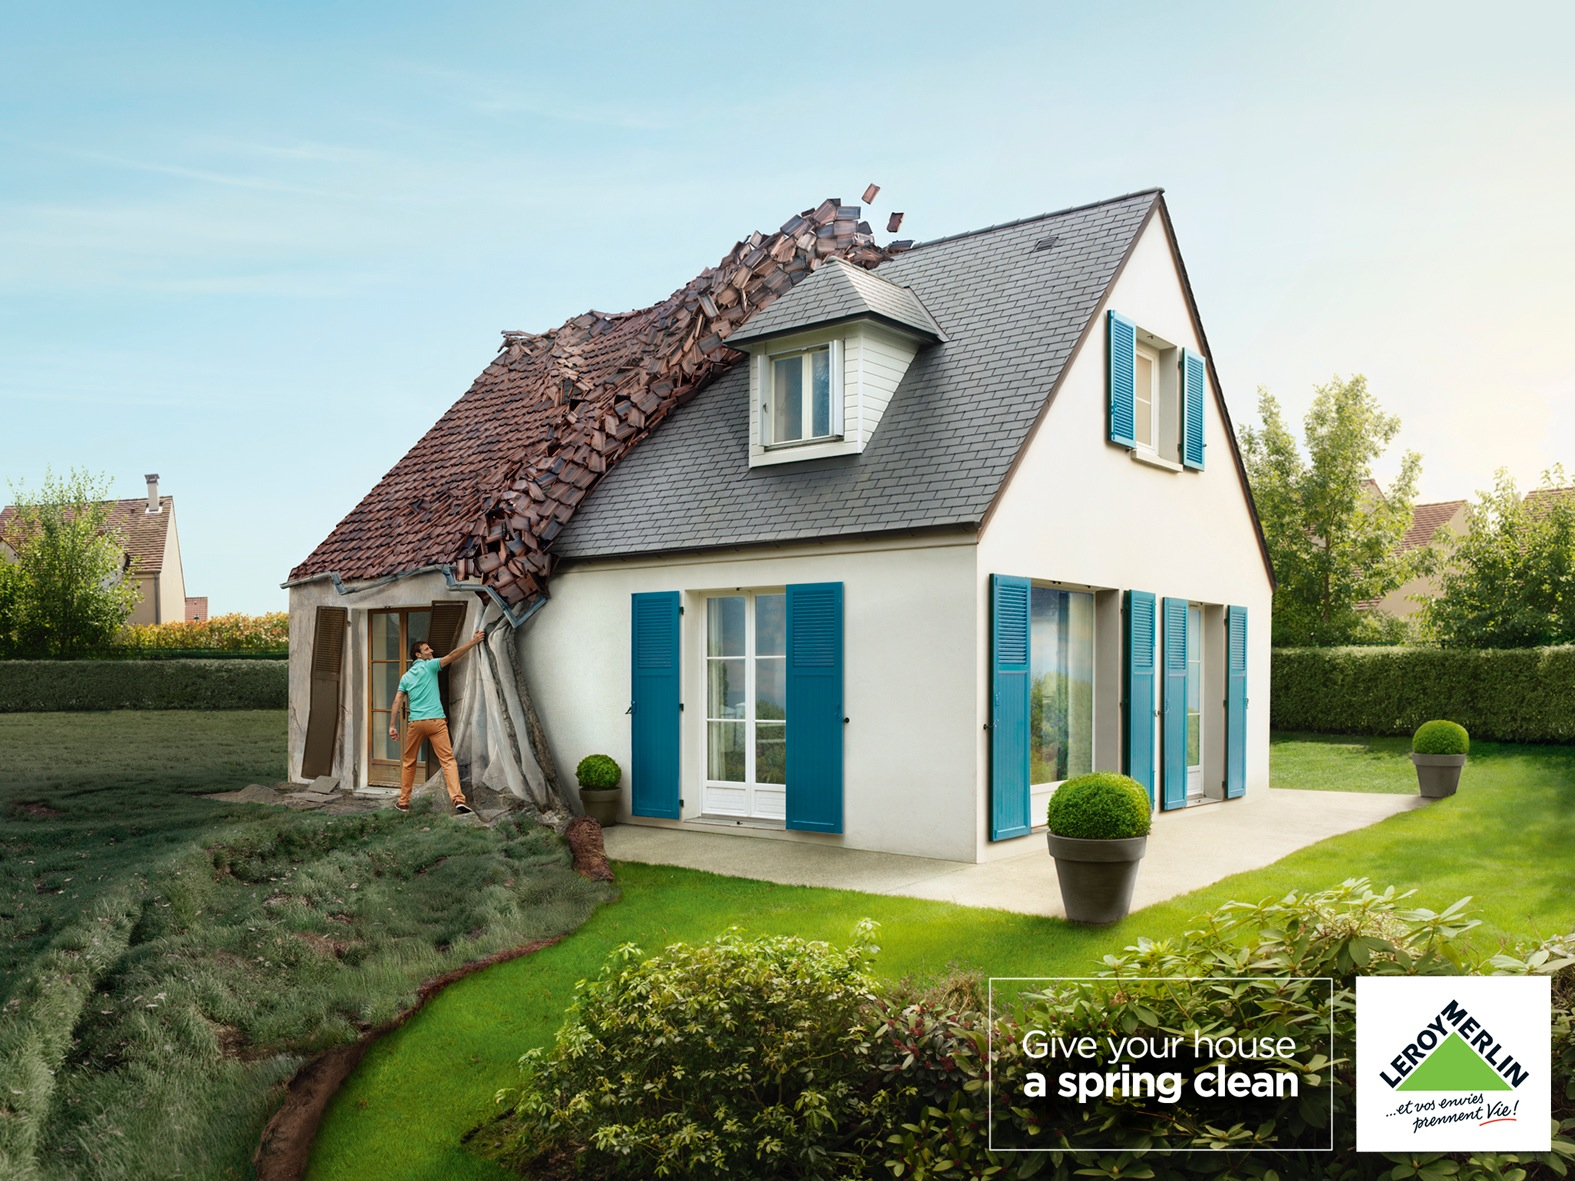 Leroy merlin print advert by peoleo spring cleaning ads for Le roy merlin paris